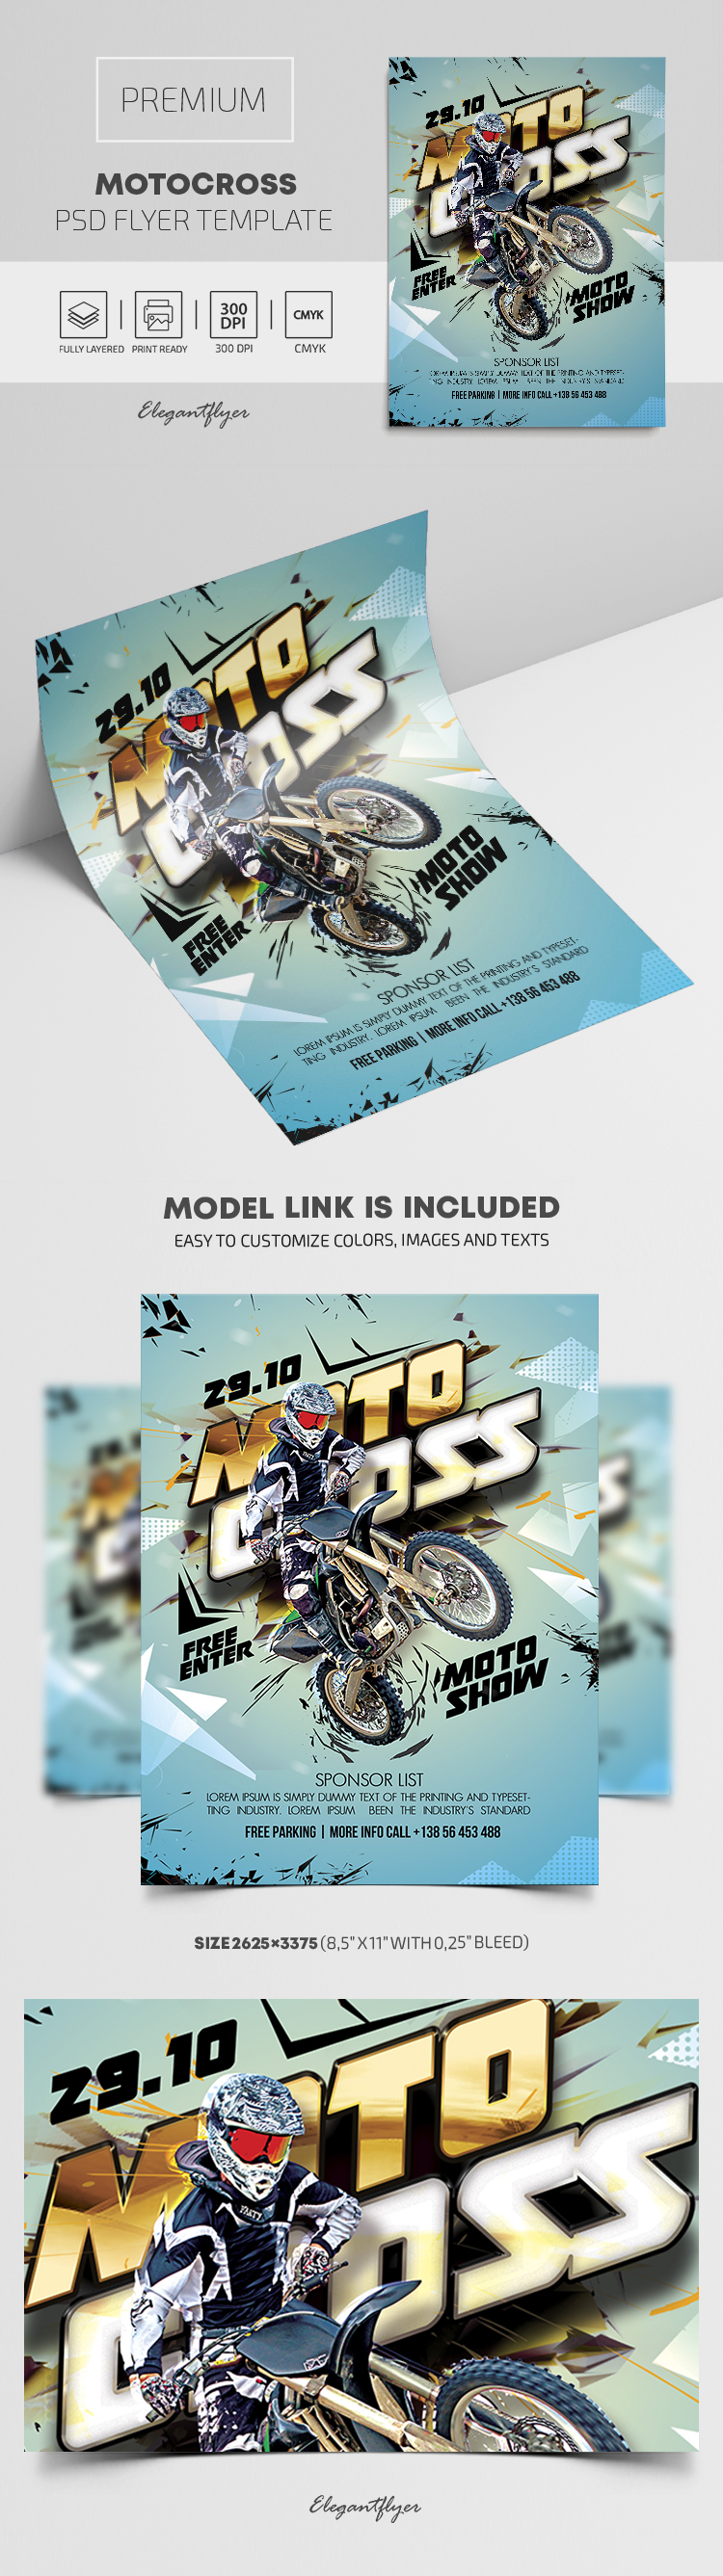 Motocross – Premium PSD Flyer Template